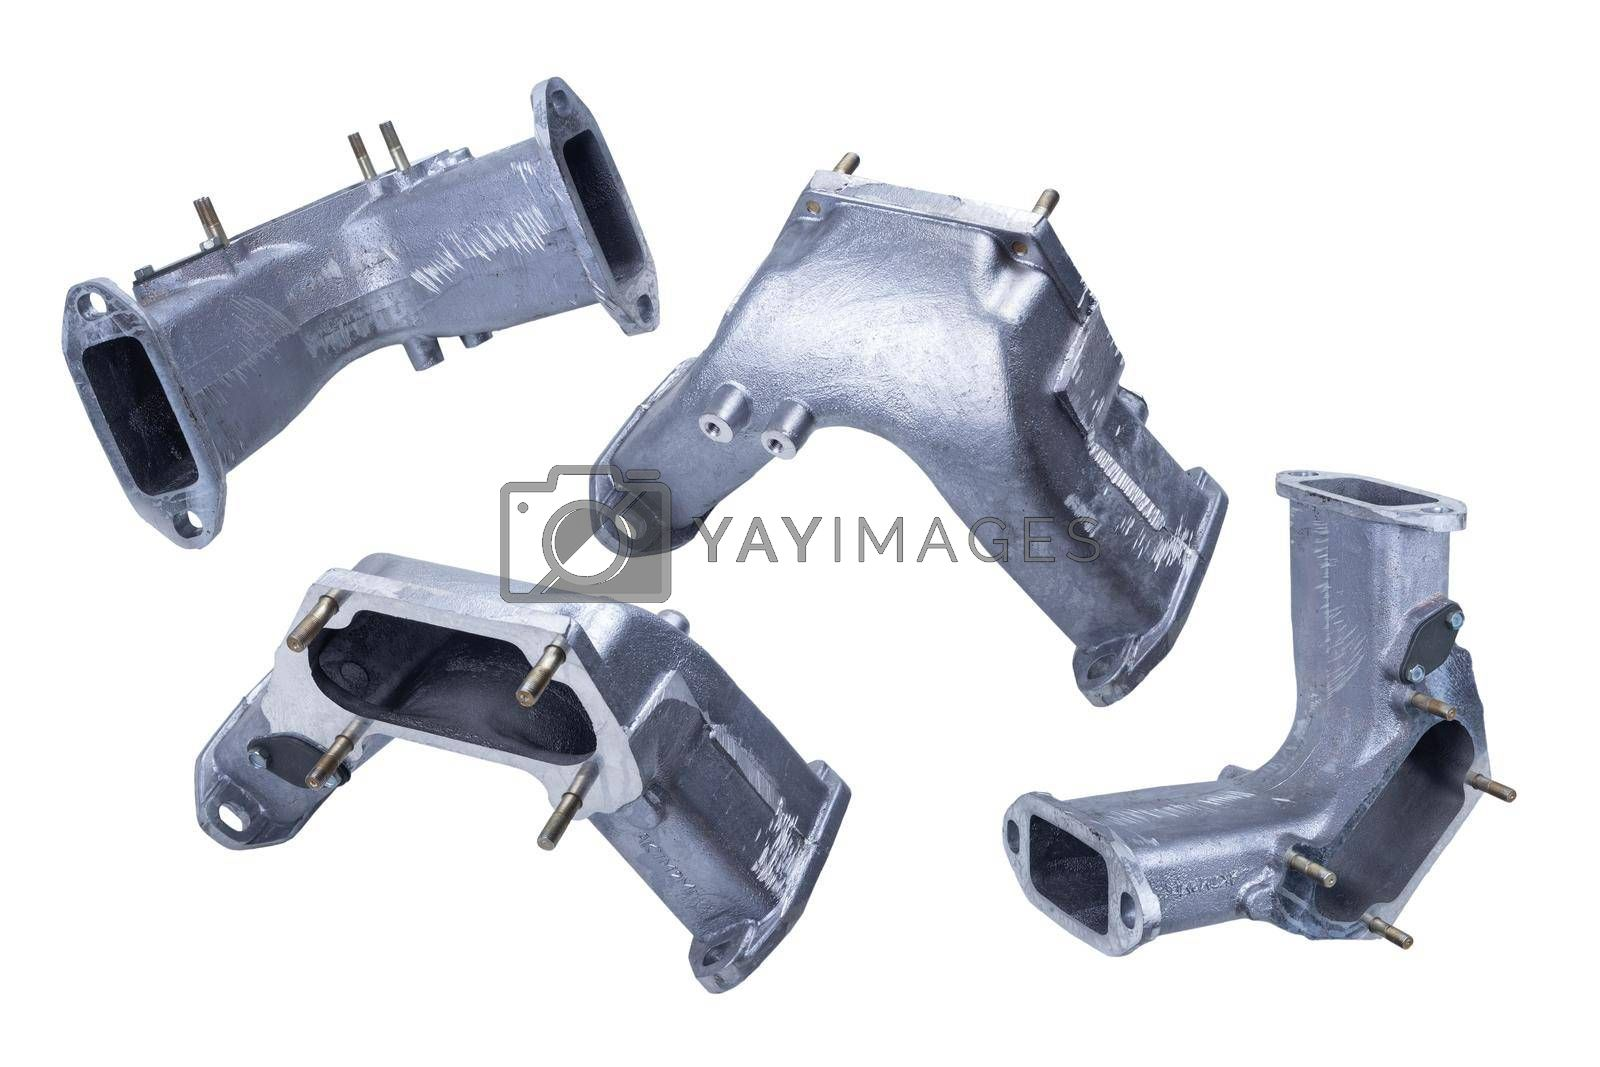 Royalty free image of parts for connecting the intake manifolds of the Russian truck engine are isolated on a white background. front and rear view by forester